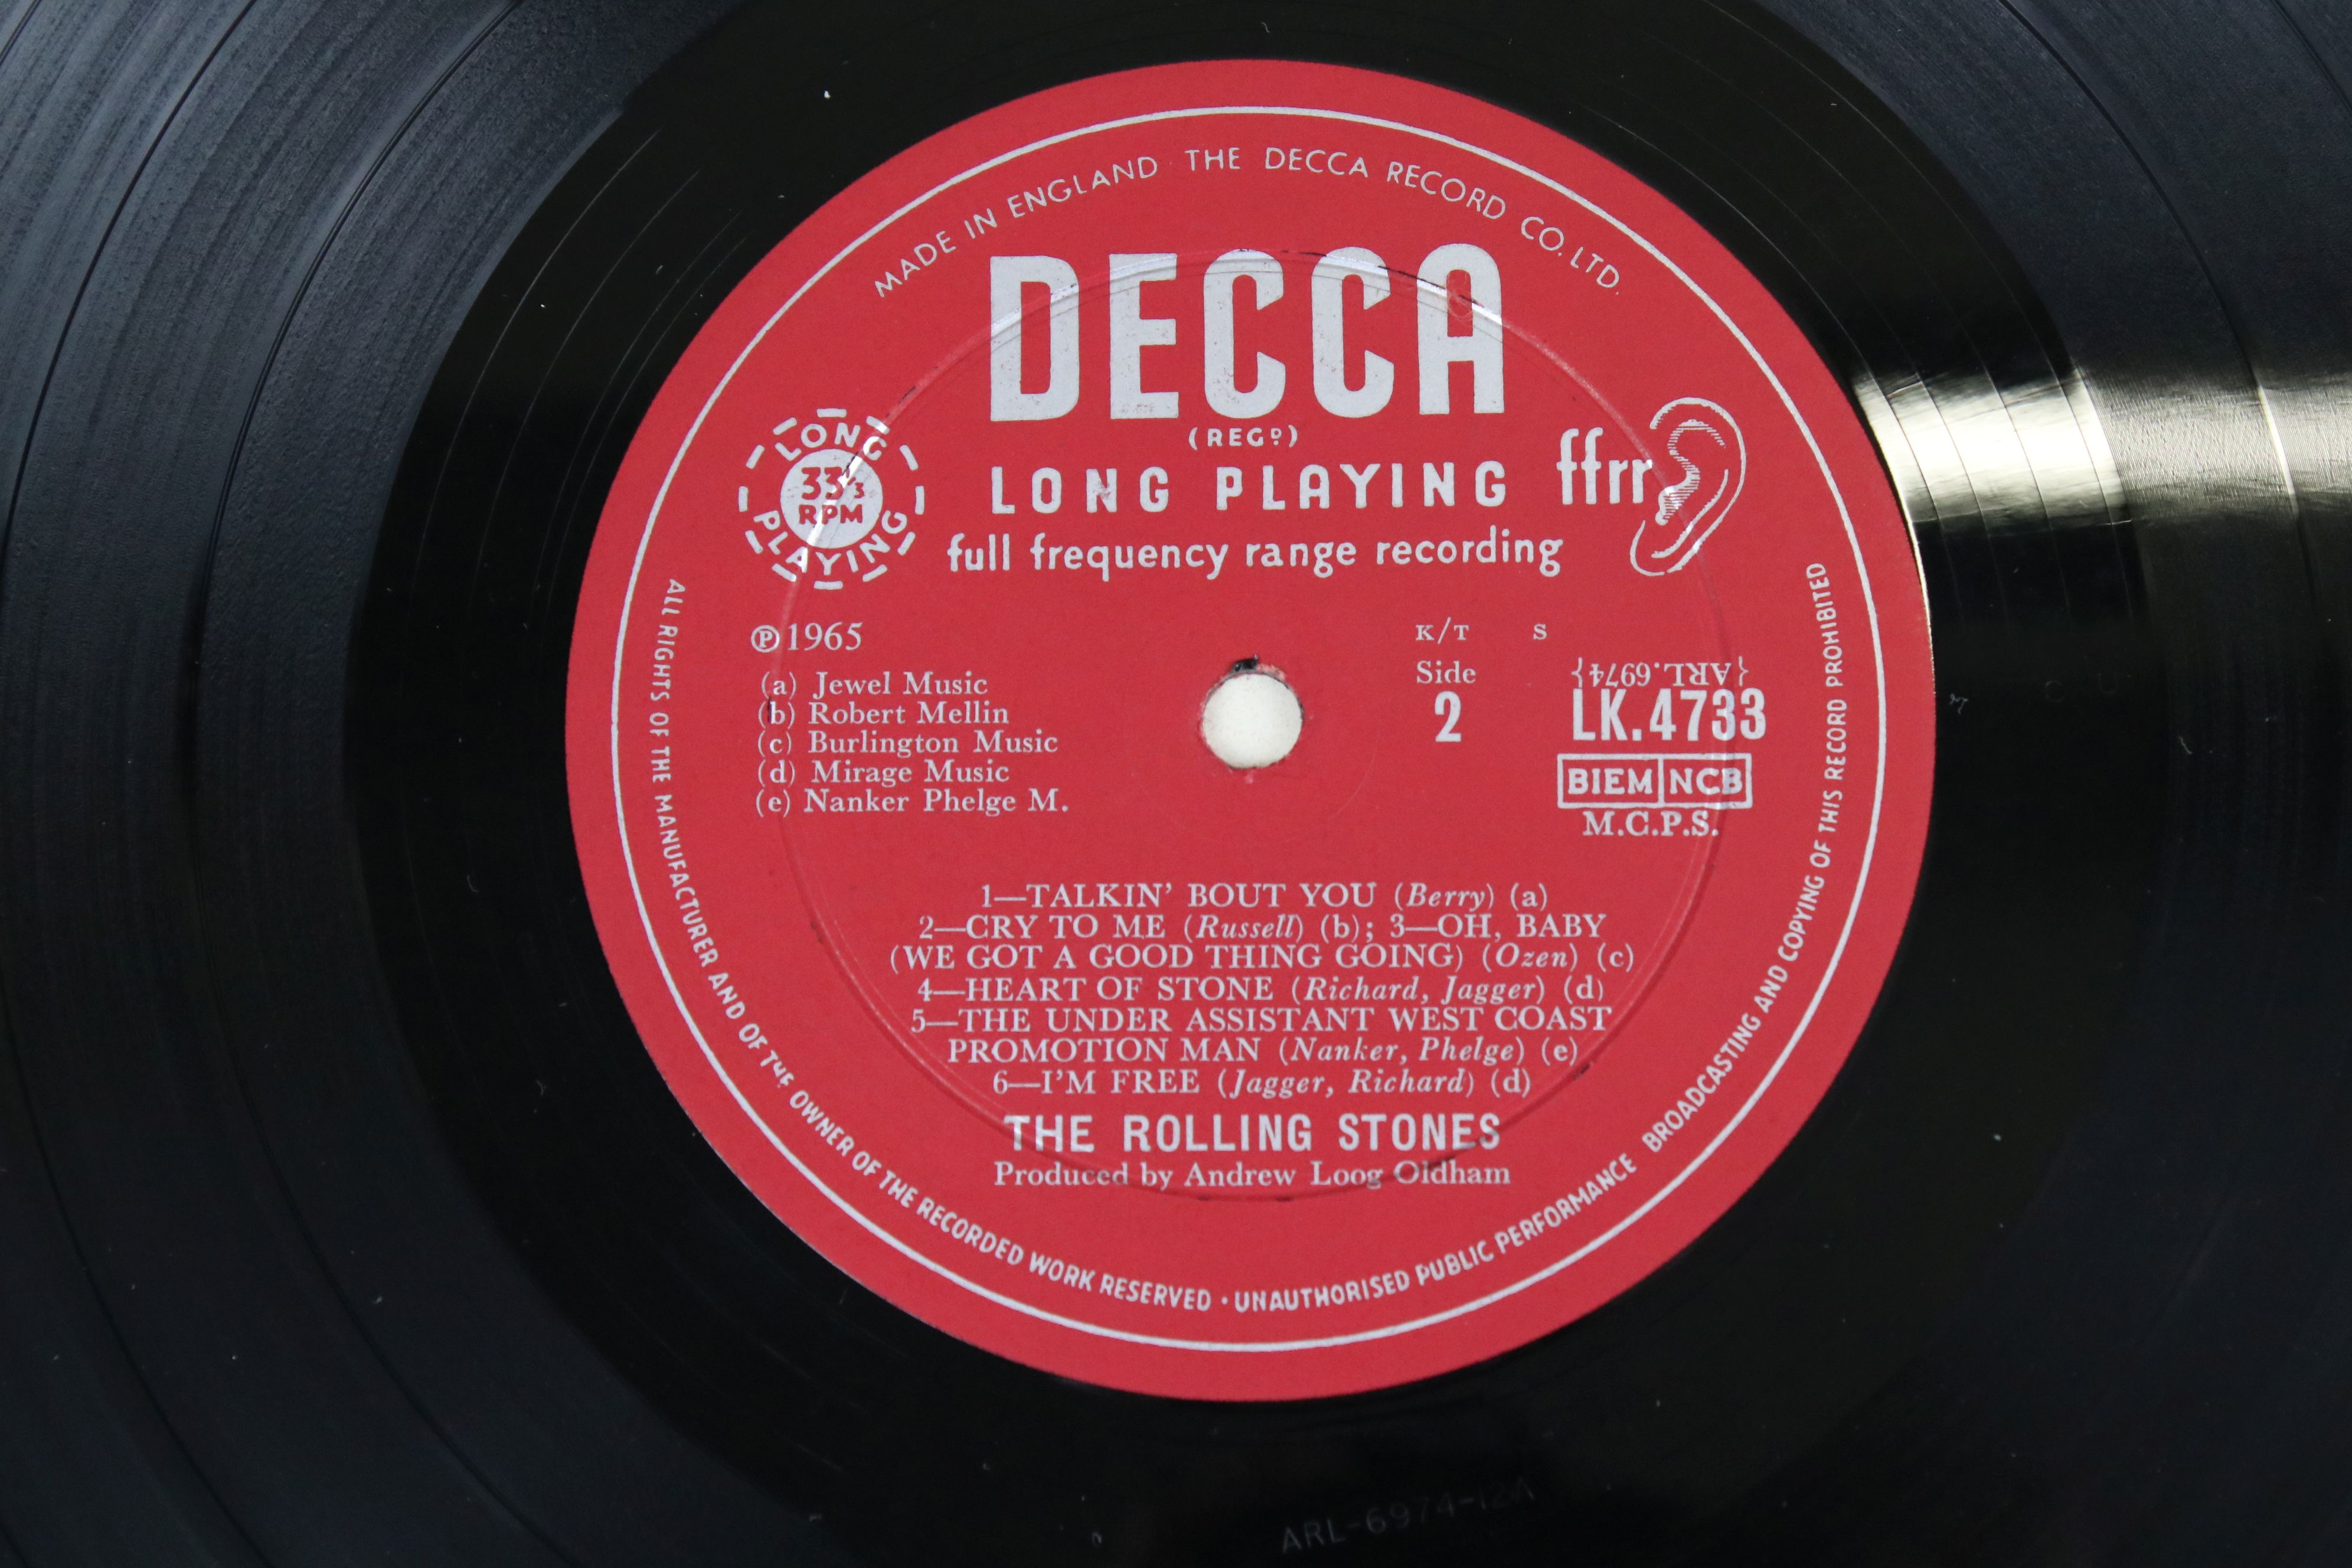 Vinyl - The Rolling Stones Out Of Our Heads (Decca LK 4733) mono, non flipback sleeve by Robert - Image 4 of 4